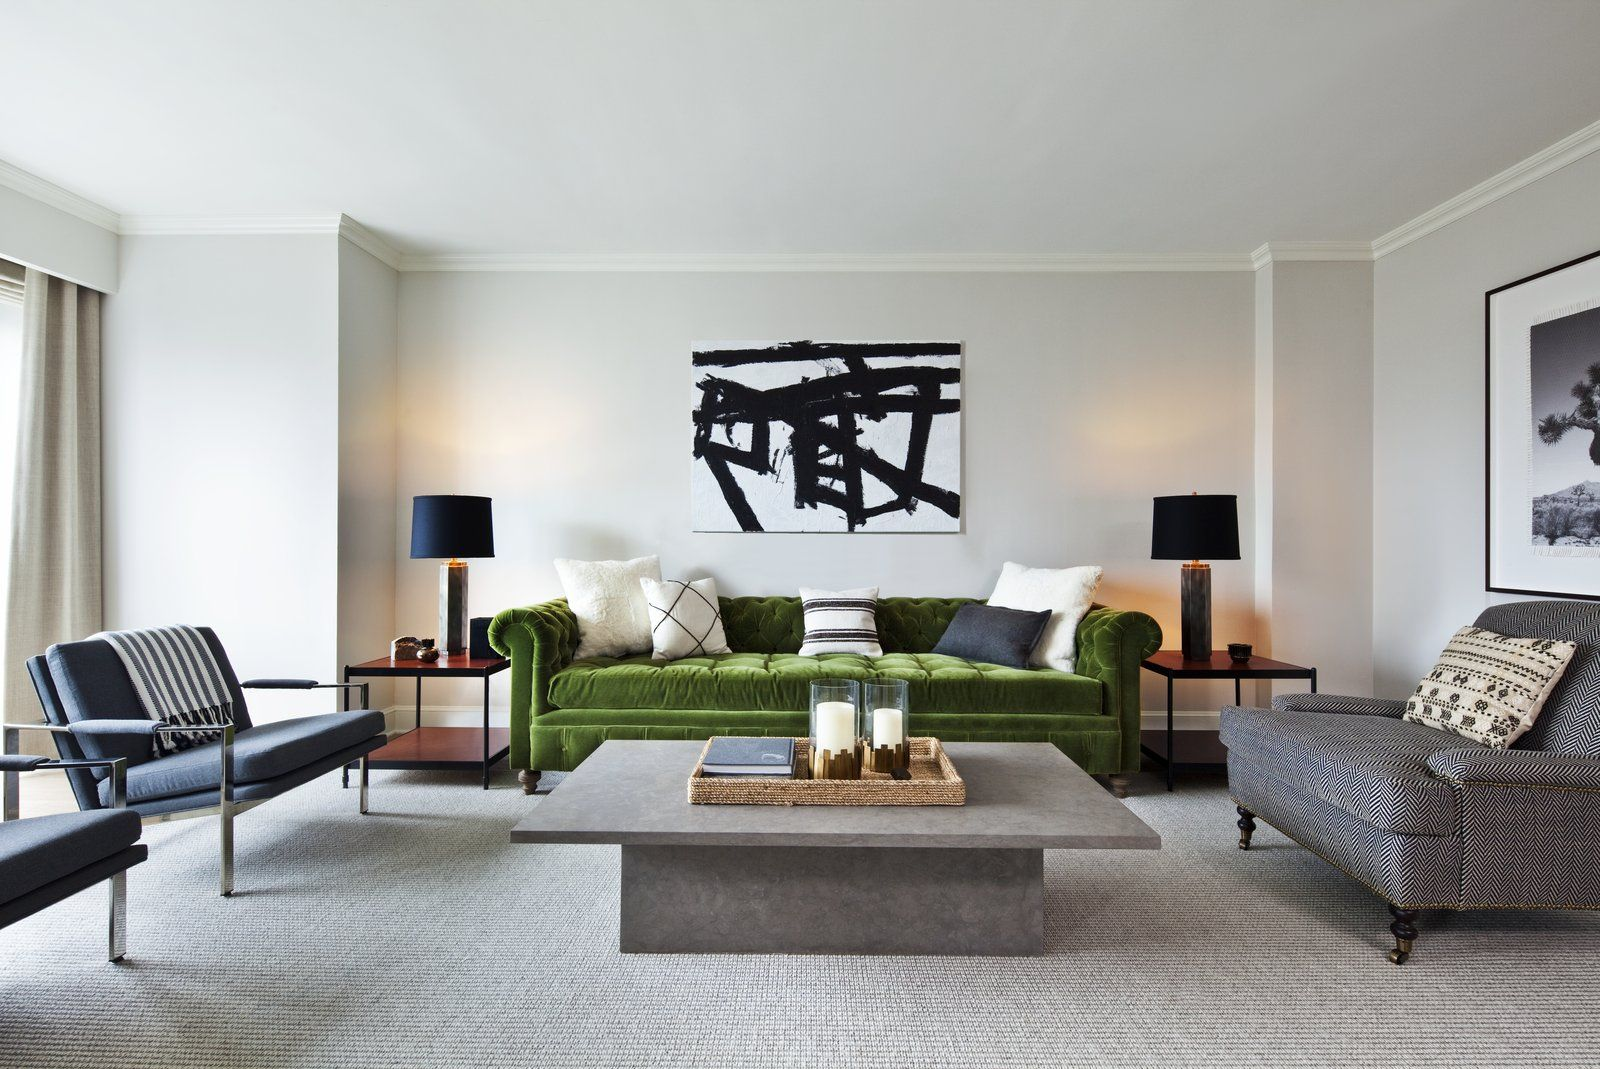 Exclusive Tour Nate Berkus Luxurious New Hotel Design Via I Love The Green Sofa Artwork Over Reminds Me Of A Painting My Grandpas Have